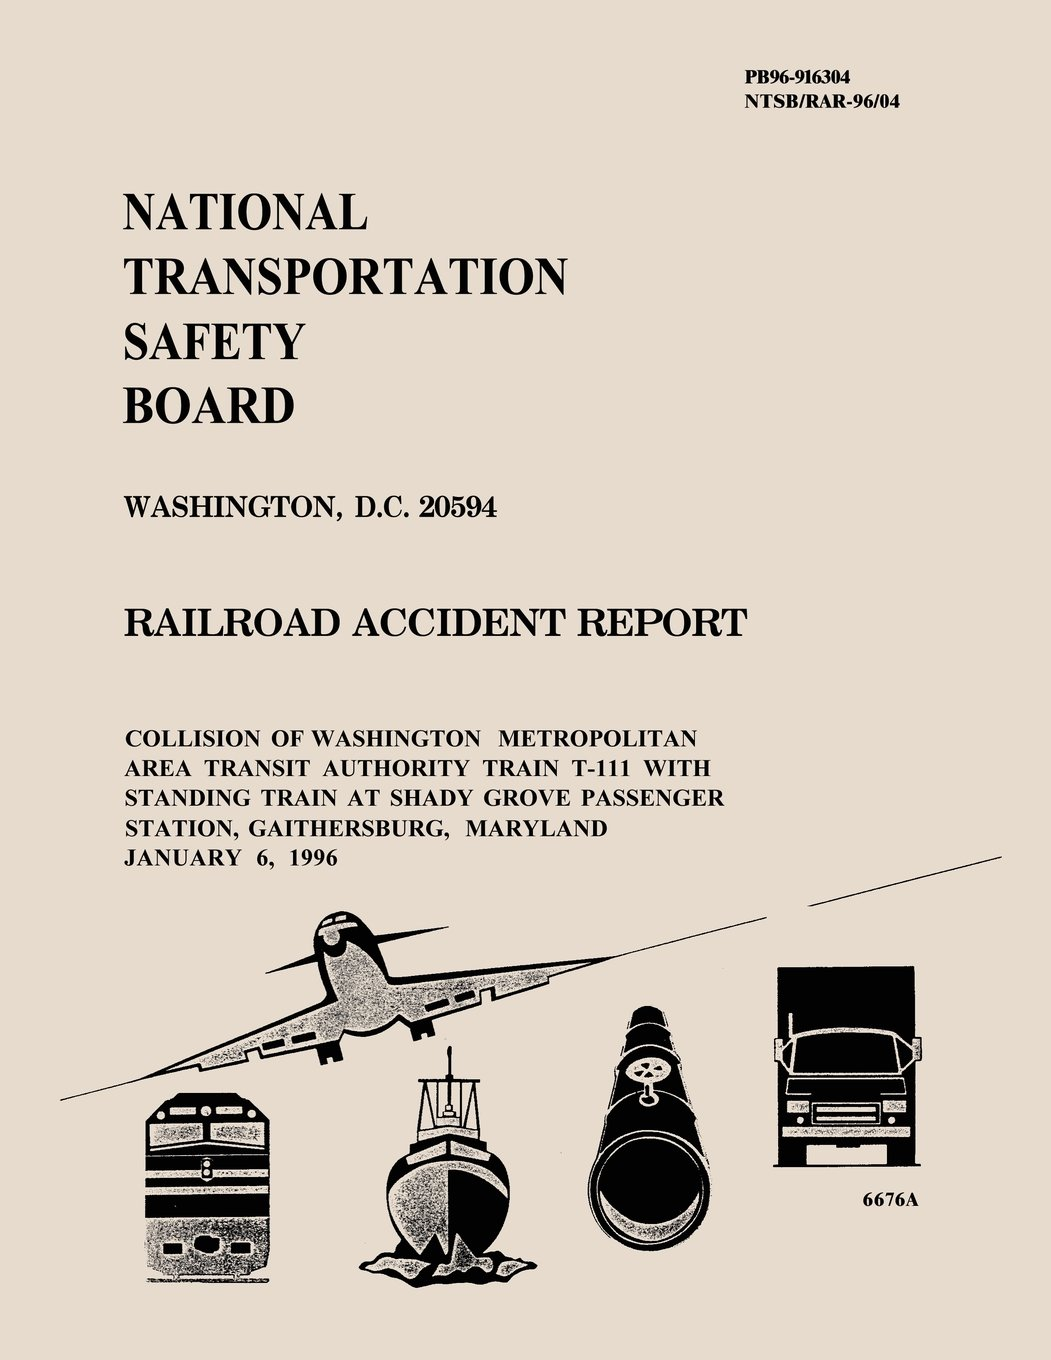 Railroad Accident Report: Collision of Washington Metropolitan Area Transit Authority Train T-111 With Standing Train at Shady Grove Passenger Station, Gaithersburg, Maryland January 6, 1996